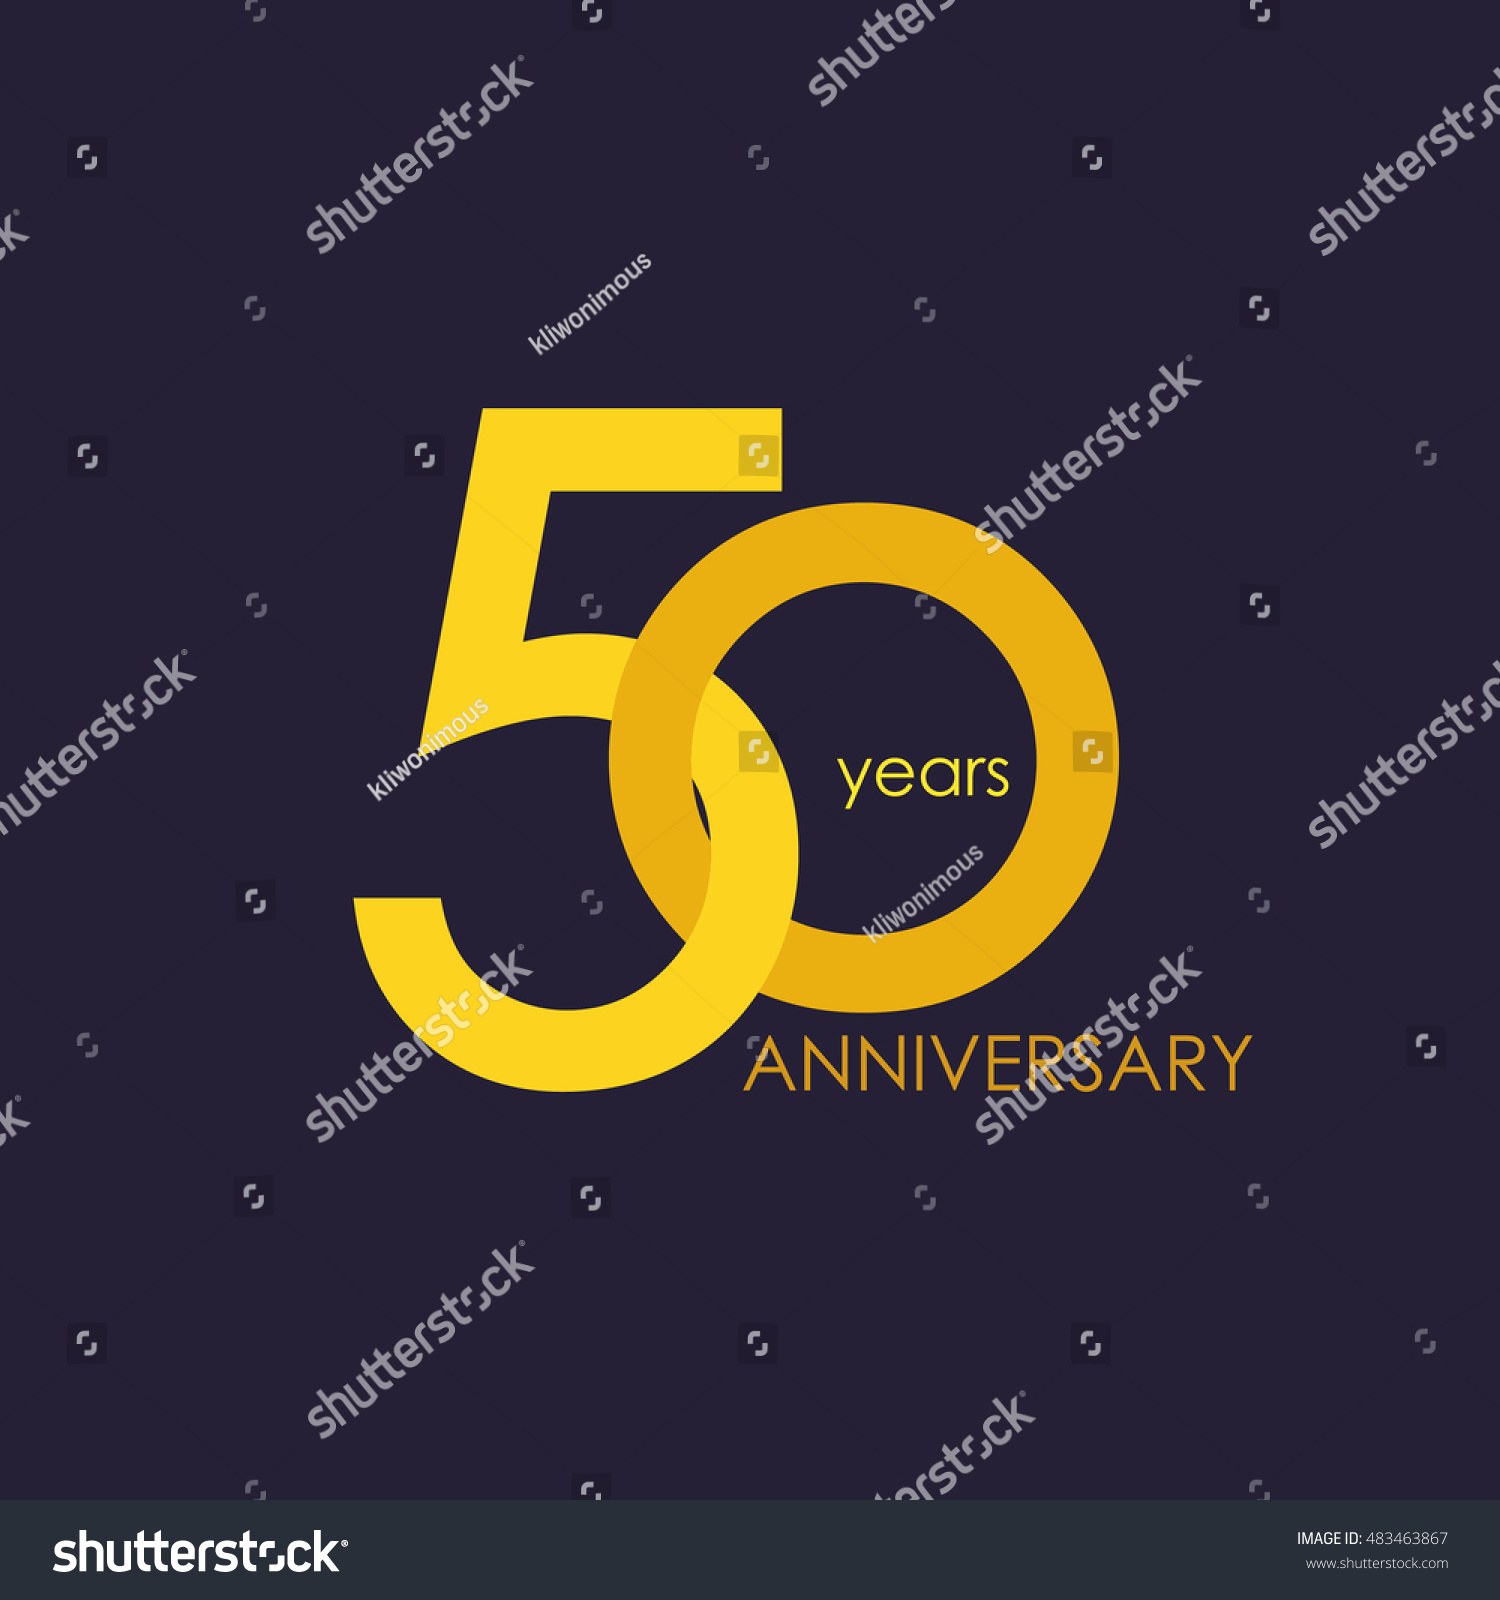 50 years anniversary signs symbols which stock vector 483463867 50 years anniversary signs symbols which is yellow with flat design style buycottarizona Choice Image